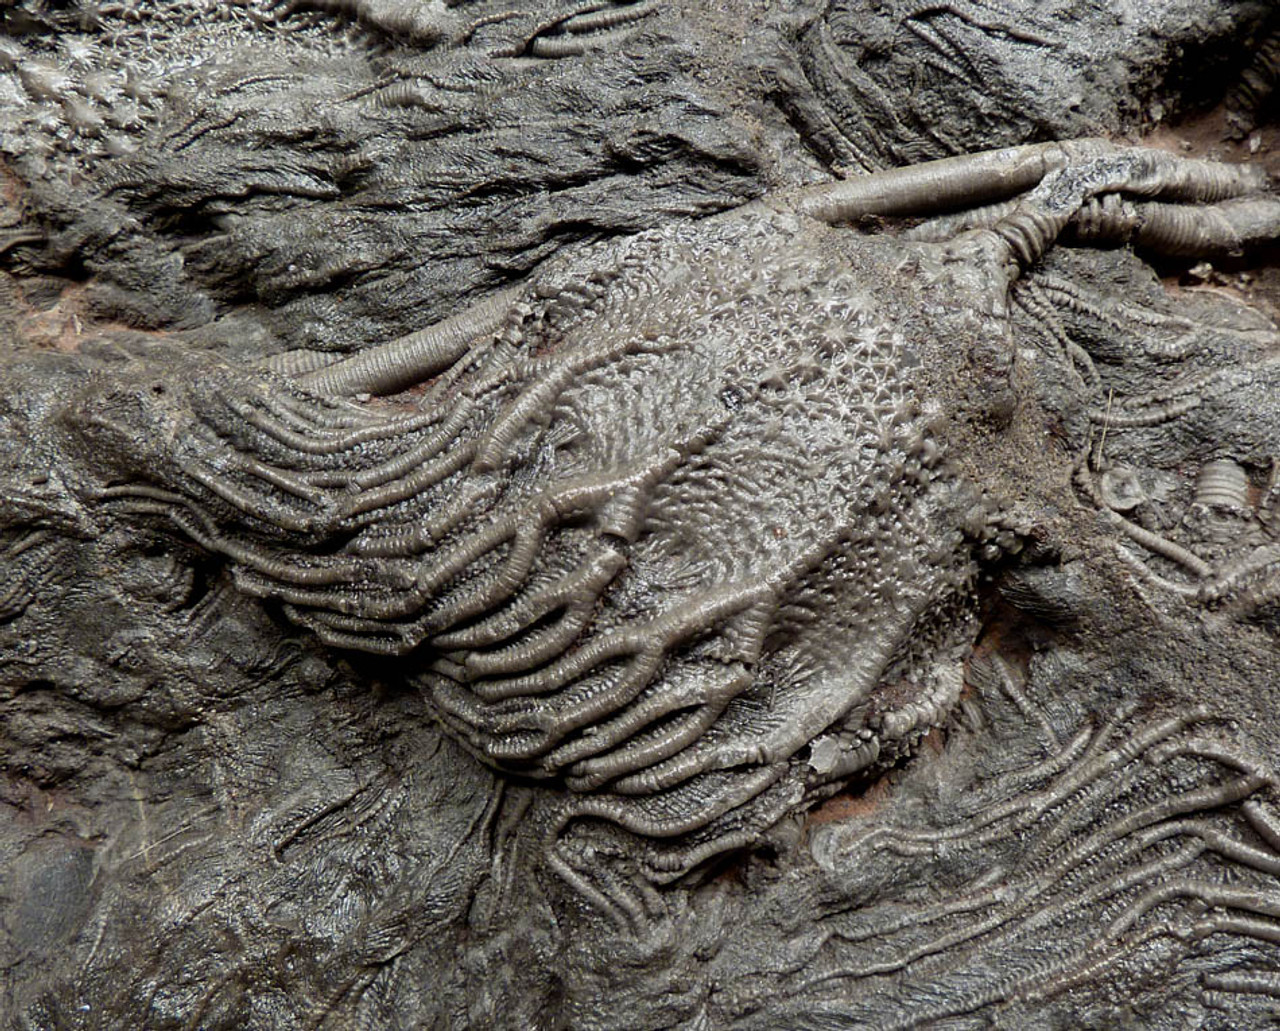 GIANT 420 MILLION YEAR PREHISTORIC SEA LIFE FOSSIL WITH EXTINCT CRINOID SEA LILIES AND CORAL *CRI032